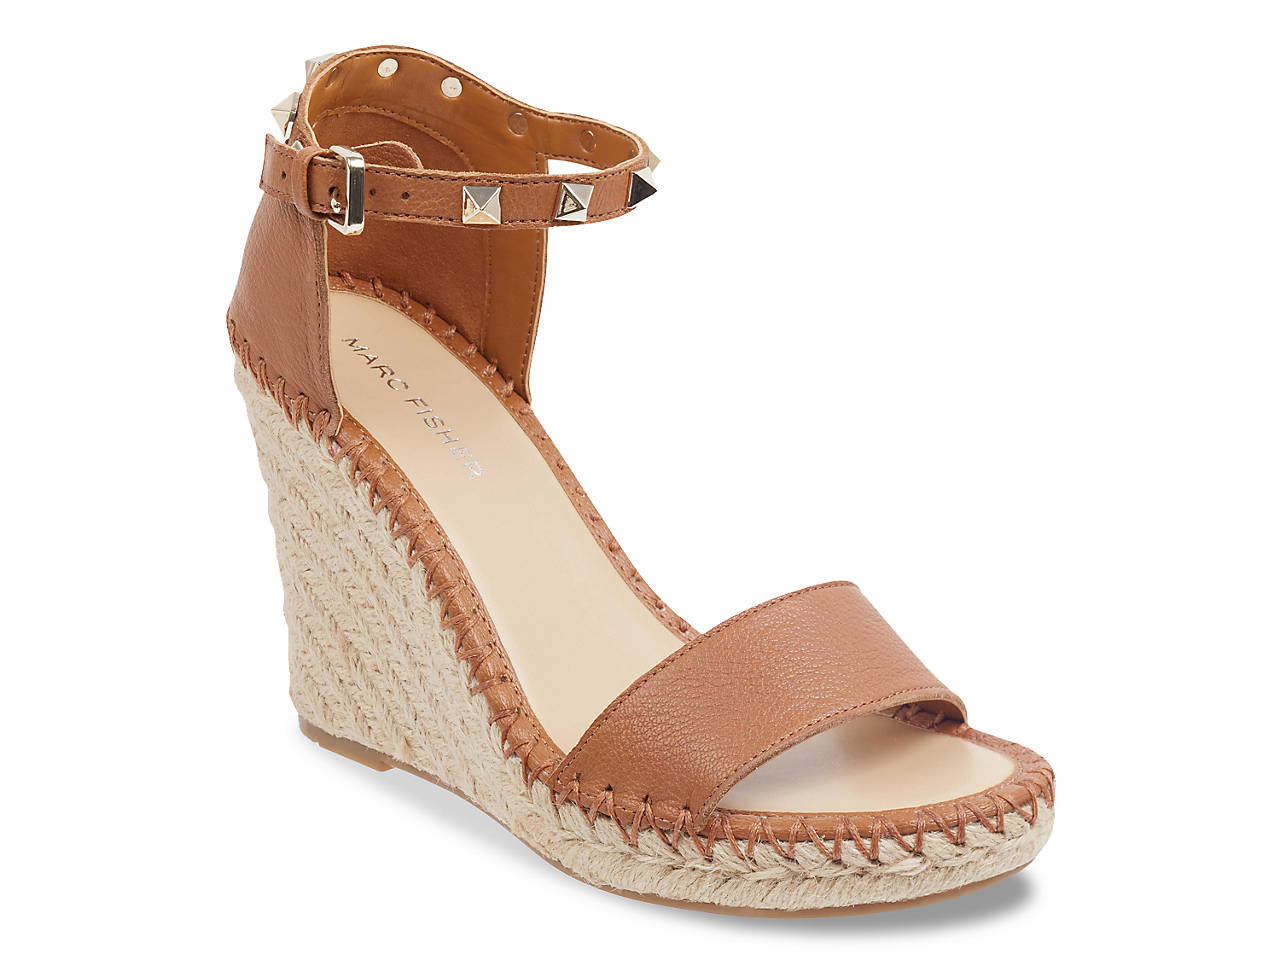 Kicker Wedge Sandal